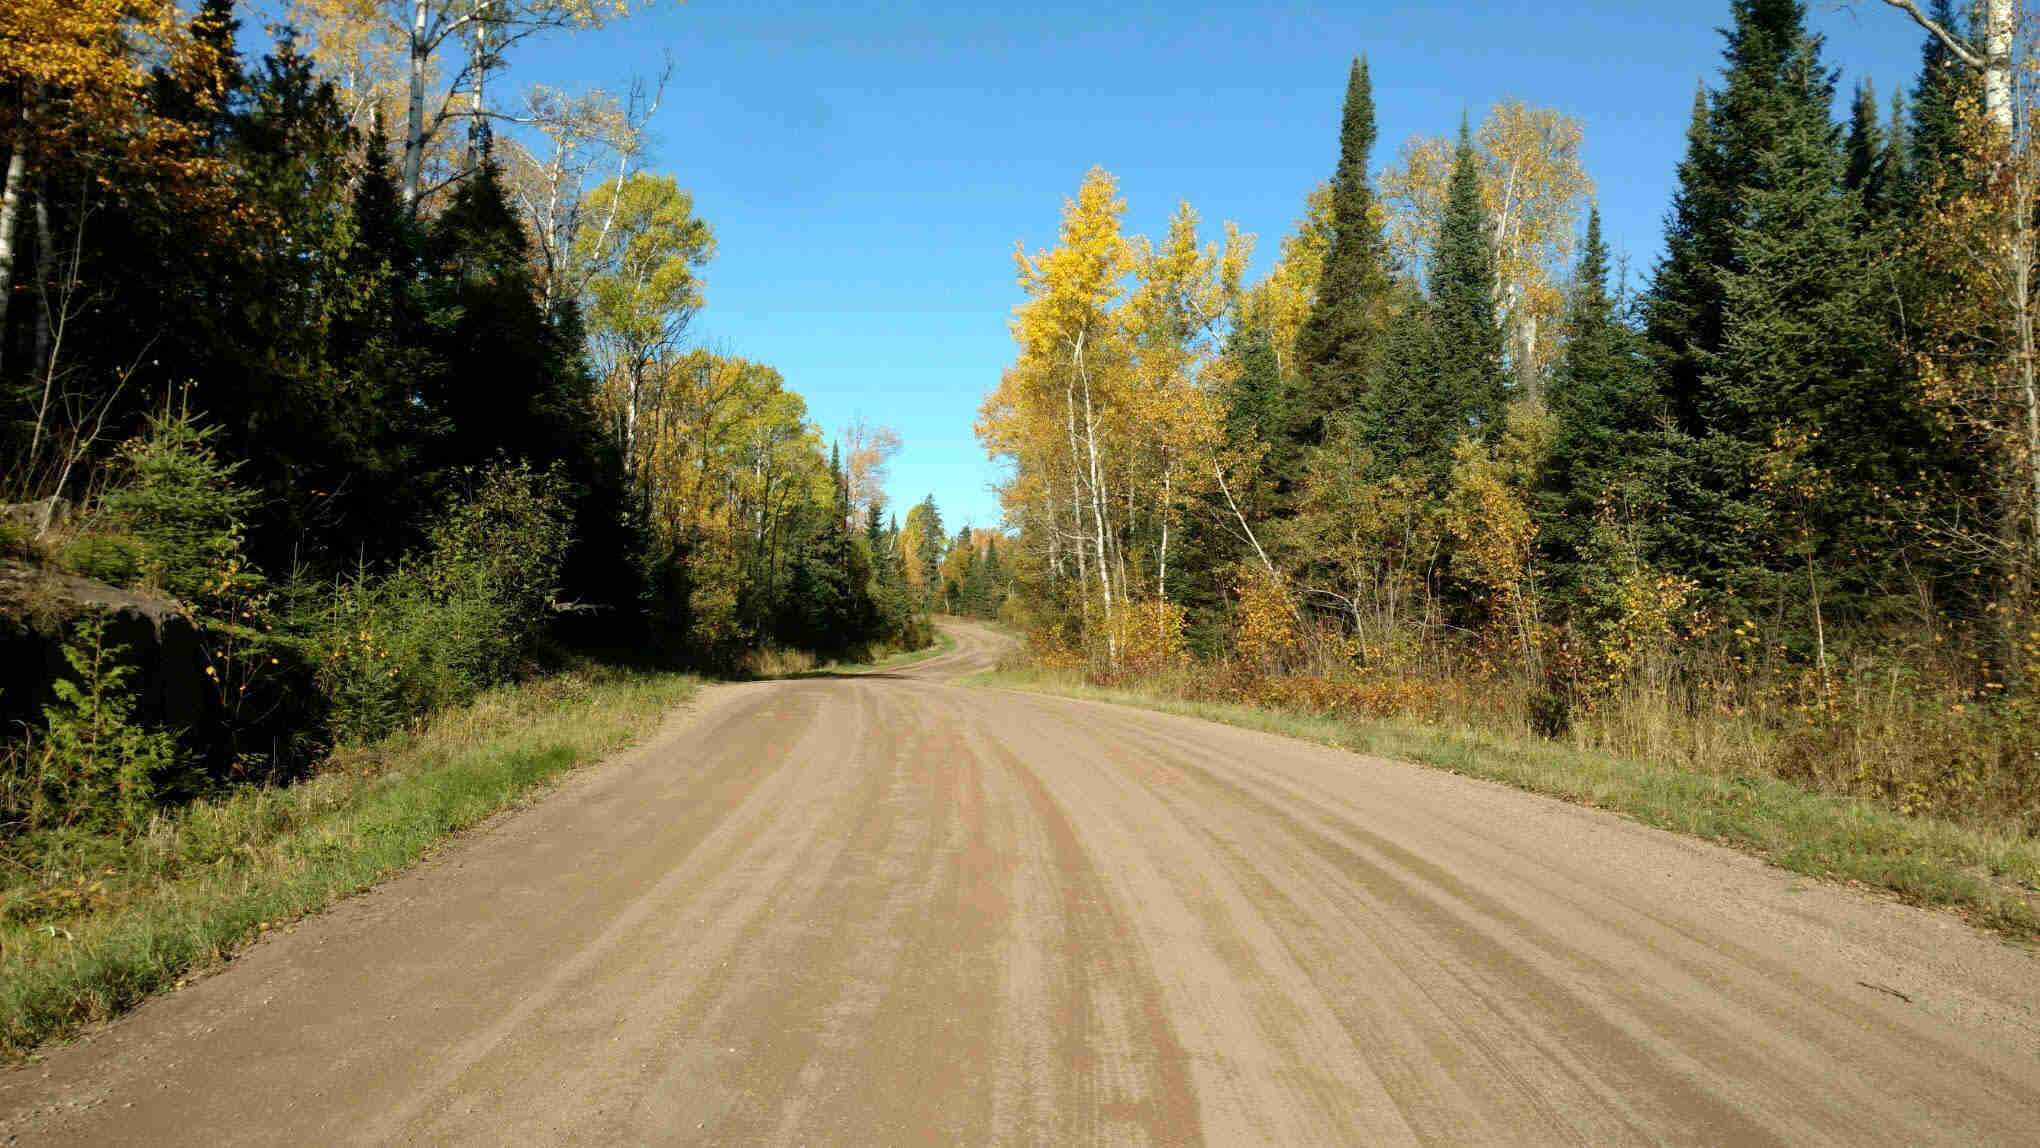 View facing down a wide gravel road with trees on the sides